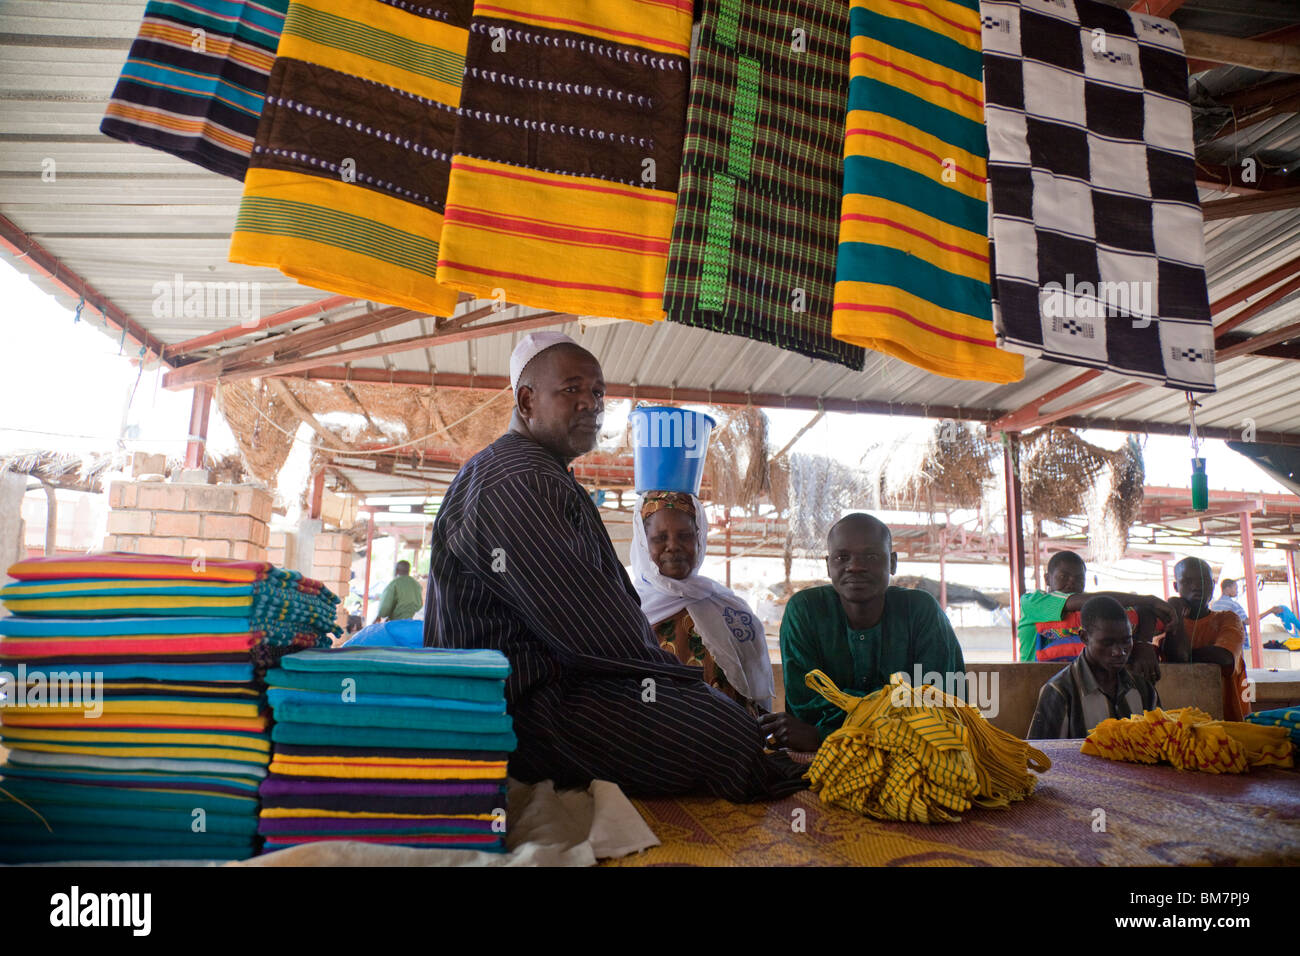 A Fulani man sells strips of cloth woven together into colorfully-patterned breakfasts in the market in Segou, Mali. - Stock Image